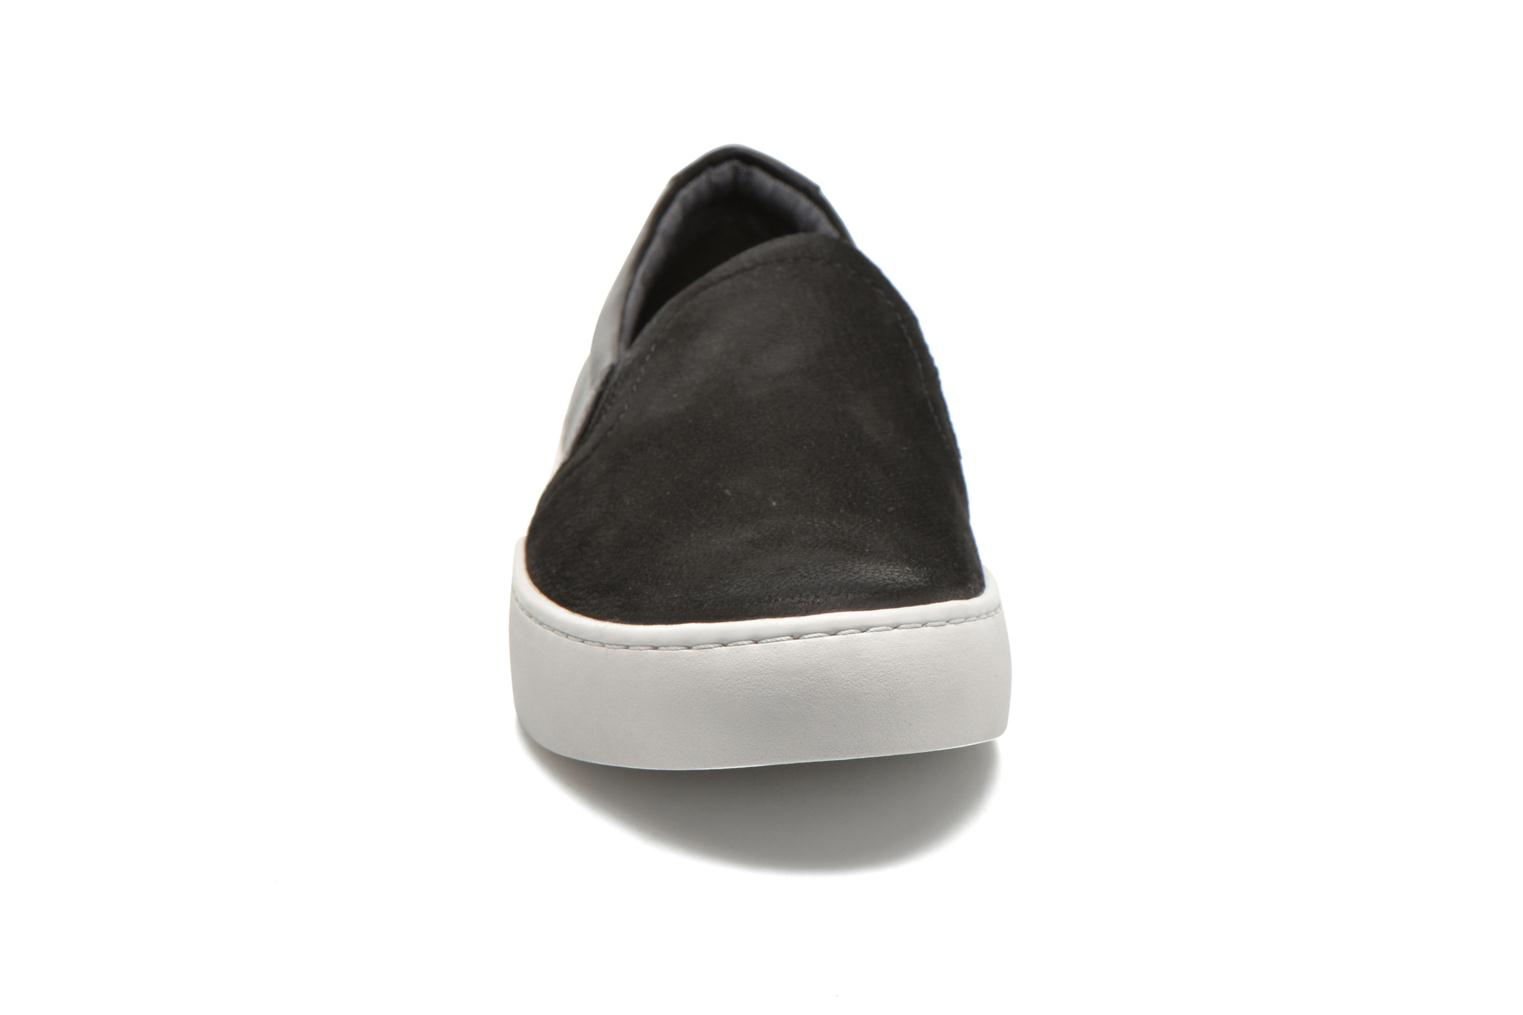 ZOE SLIP-ON 4326-350 Black